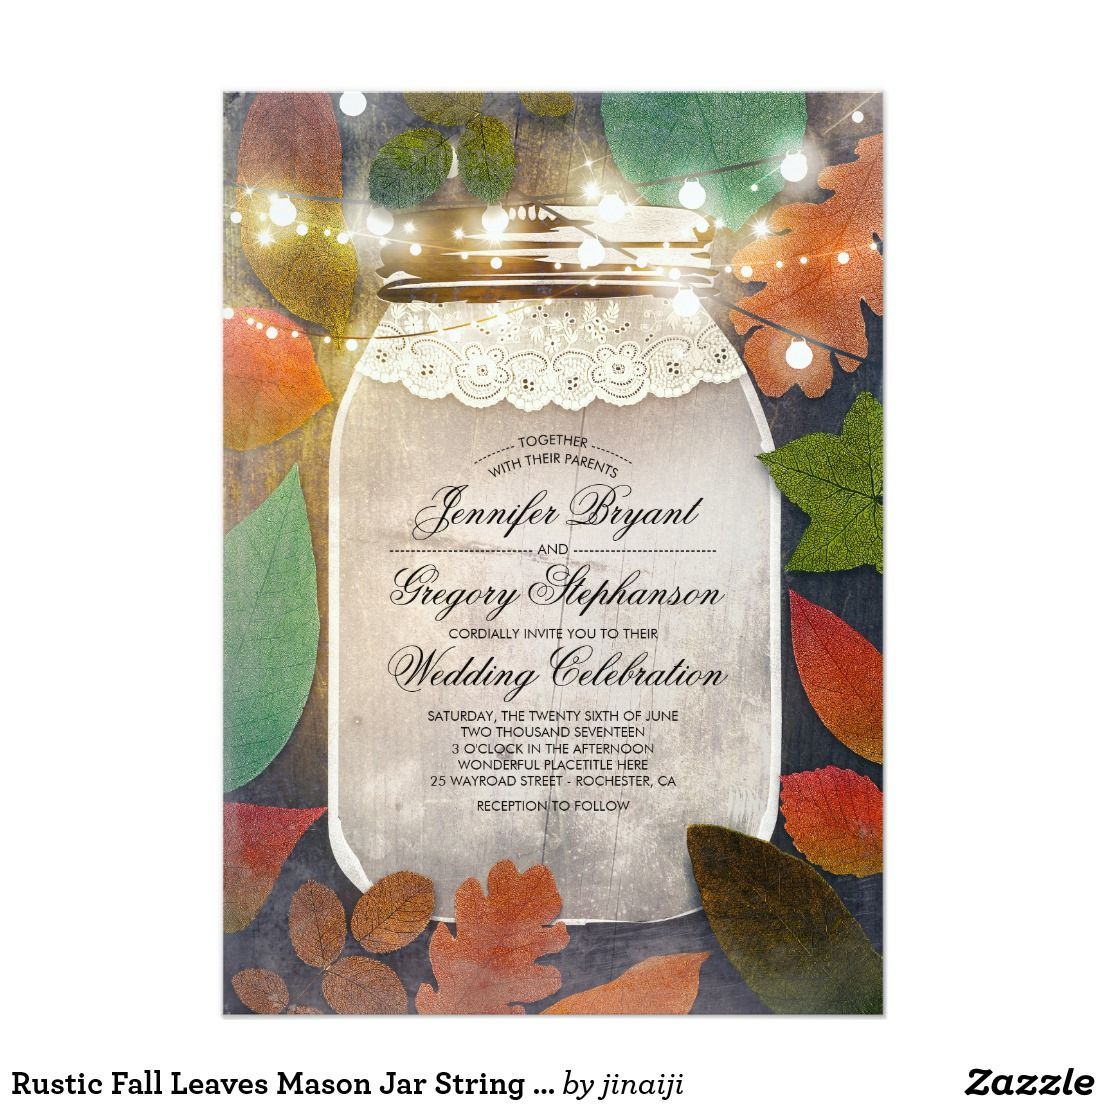 Rustic country burlap string lights lace wedding card - Rustic Fall Leaves Mason Jar String Lights Wedding Card